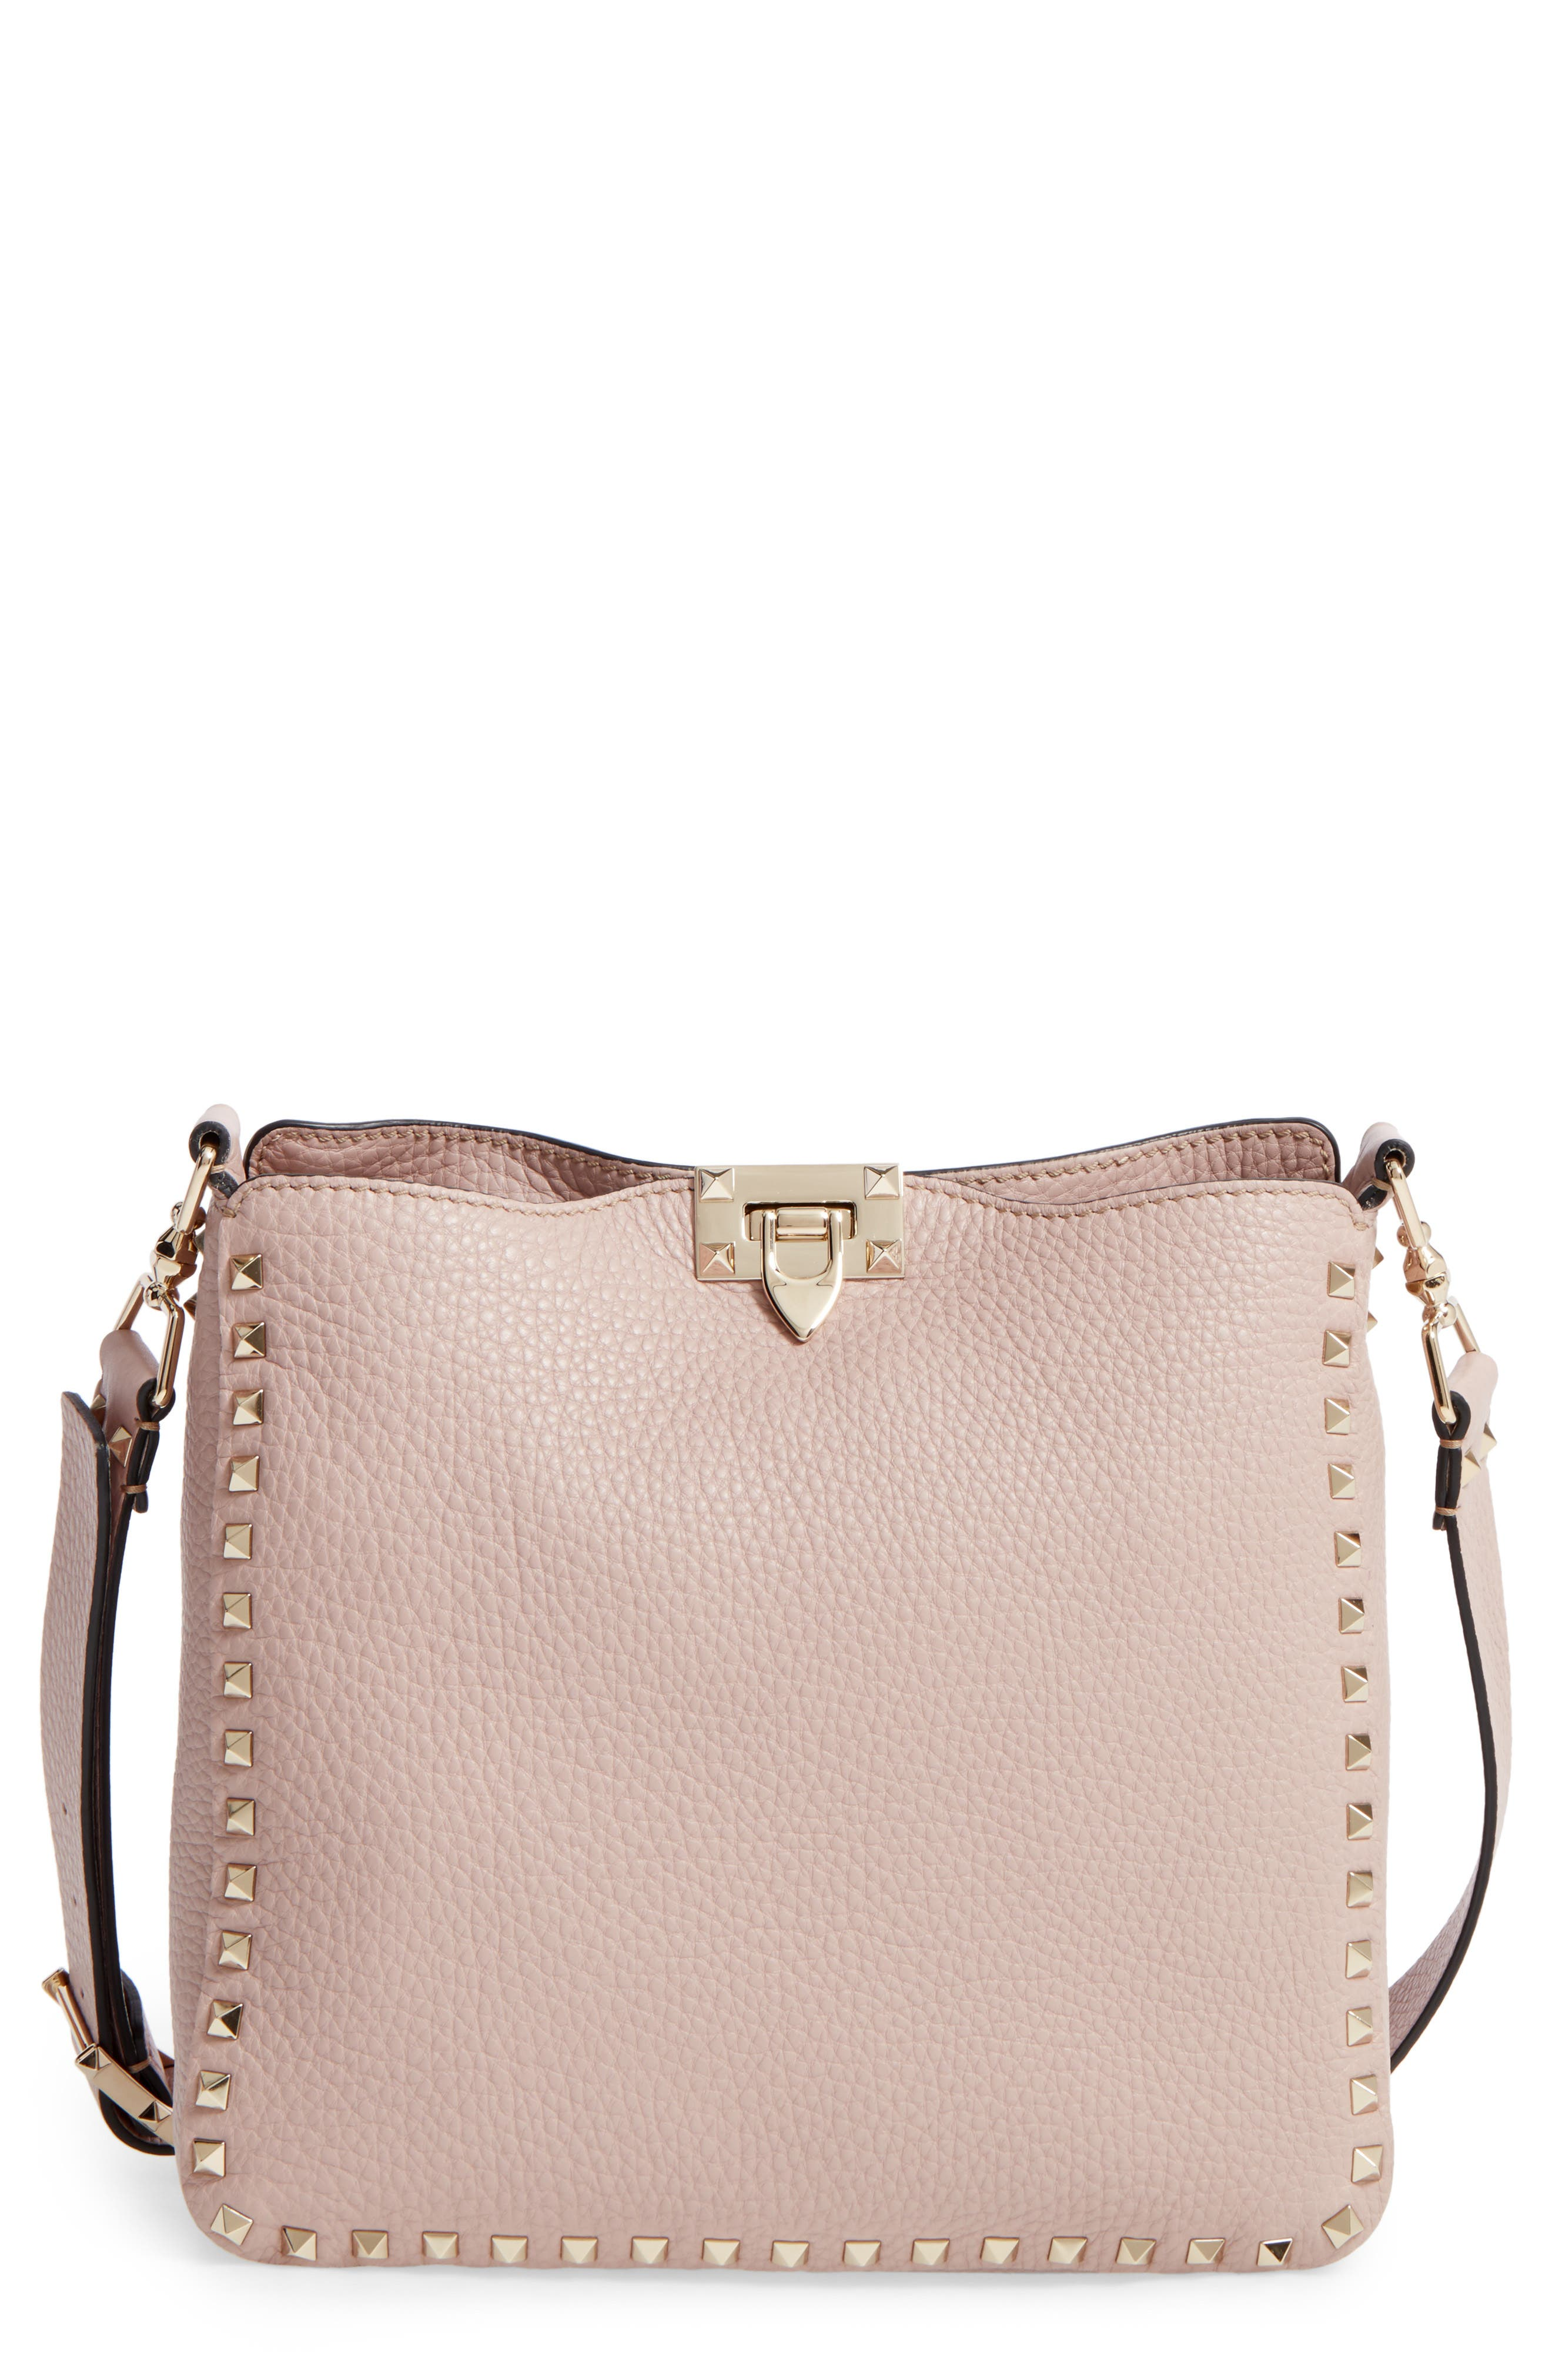 Vitello Rockstud Leather Hobo,                         Main,                         color, 950